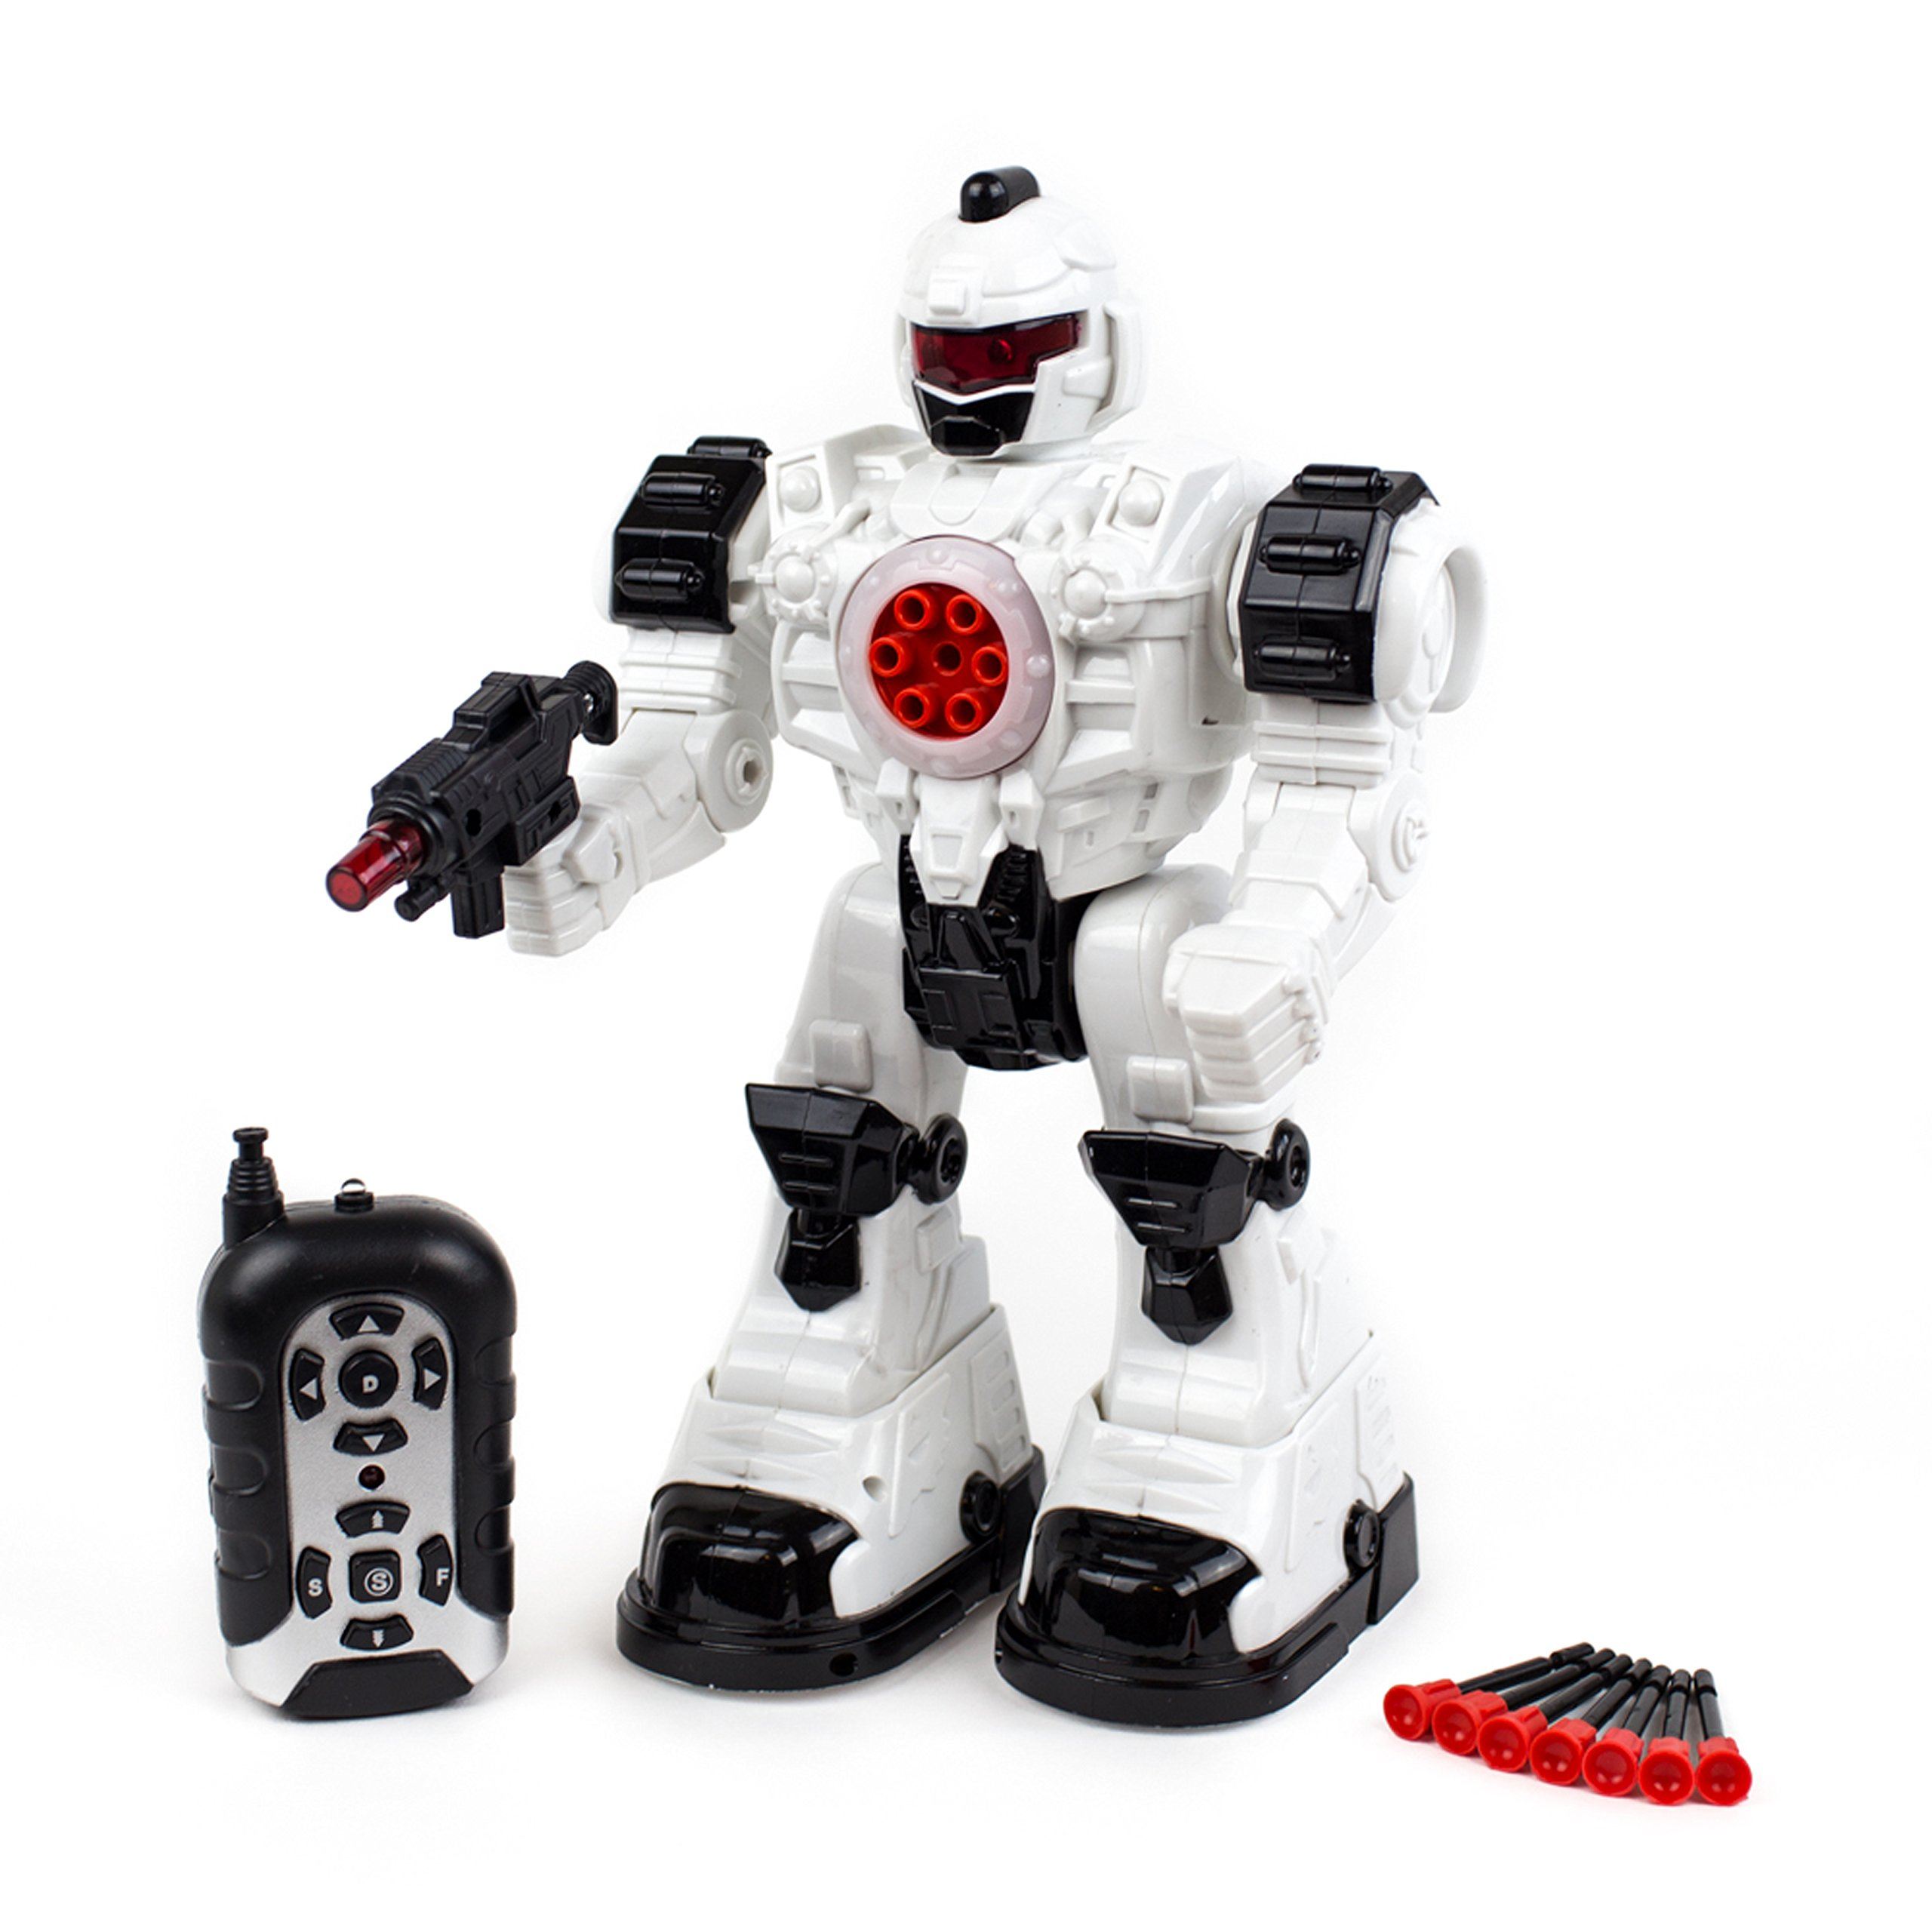 Toysery Remote Control Robot Police Toy for Kids Boys Girls with Flashing Lights Action Toy for Boys by Toysery (Image #2)